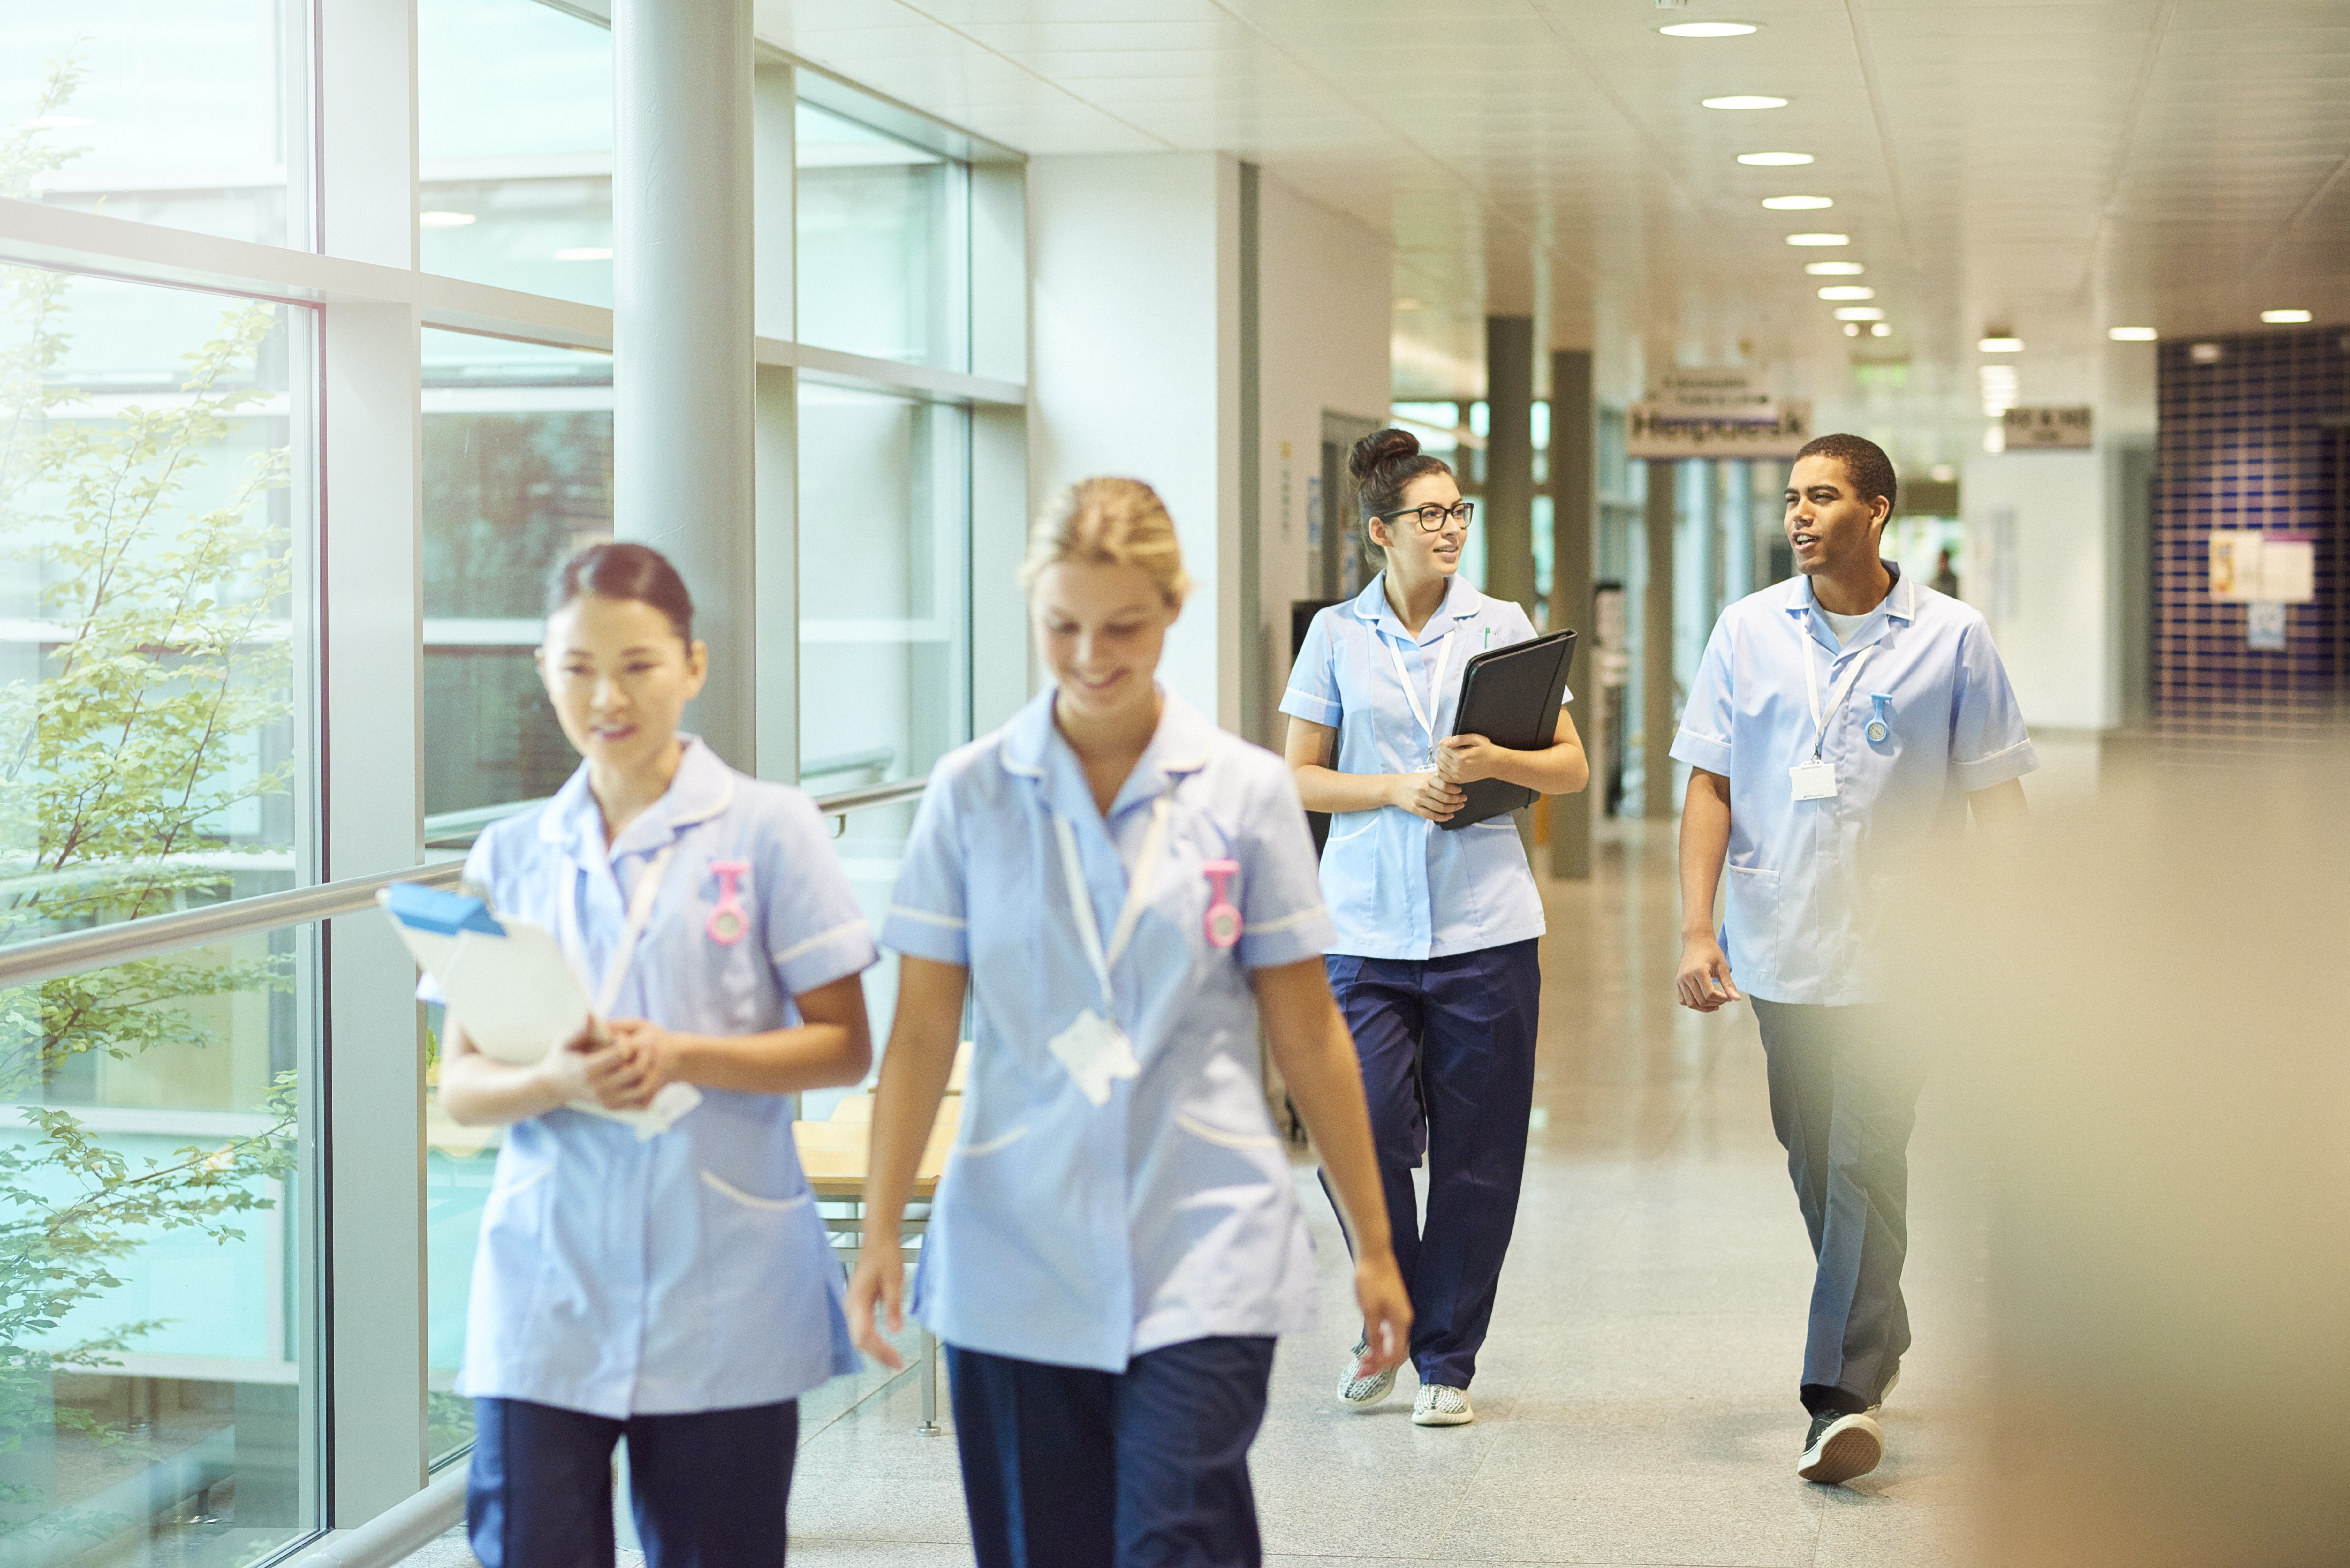 a group of four young trainee nurses including male and female nurses , walk towards camera down a hospital corridor . They are wearing uk nurse uniforms of trousers and tunics.